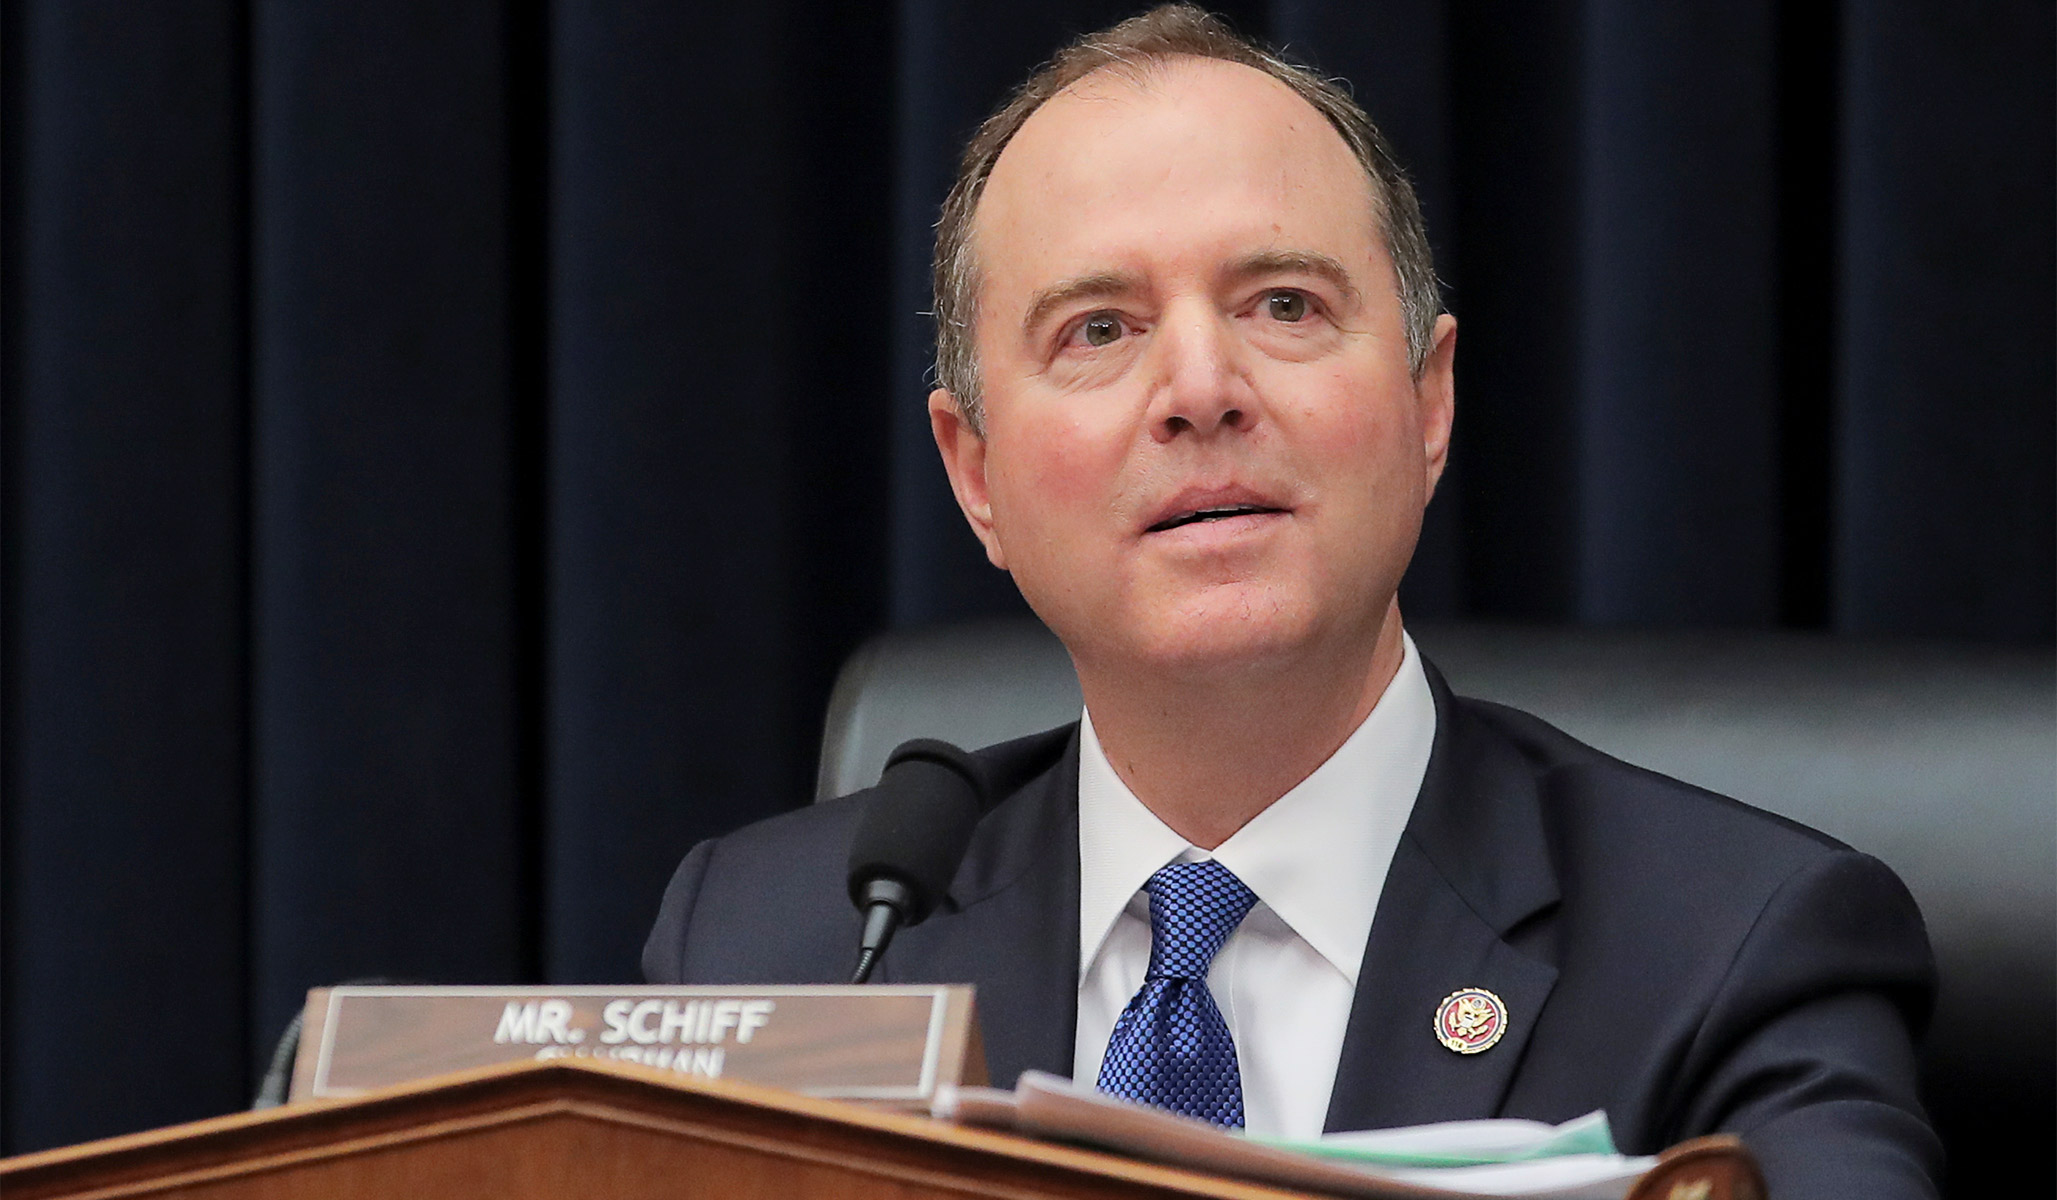 Schiff Threatens to Sue White House over Whistleblower Complaint Reported to Involve Trump